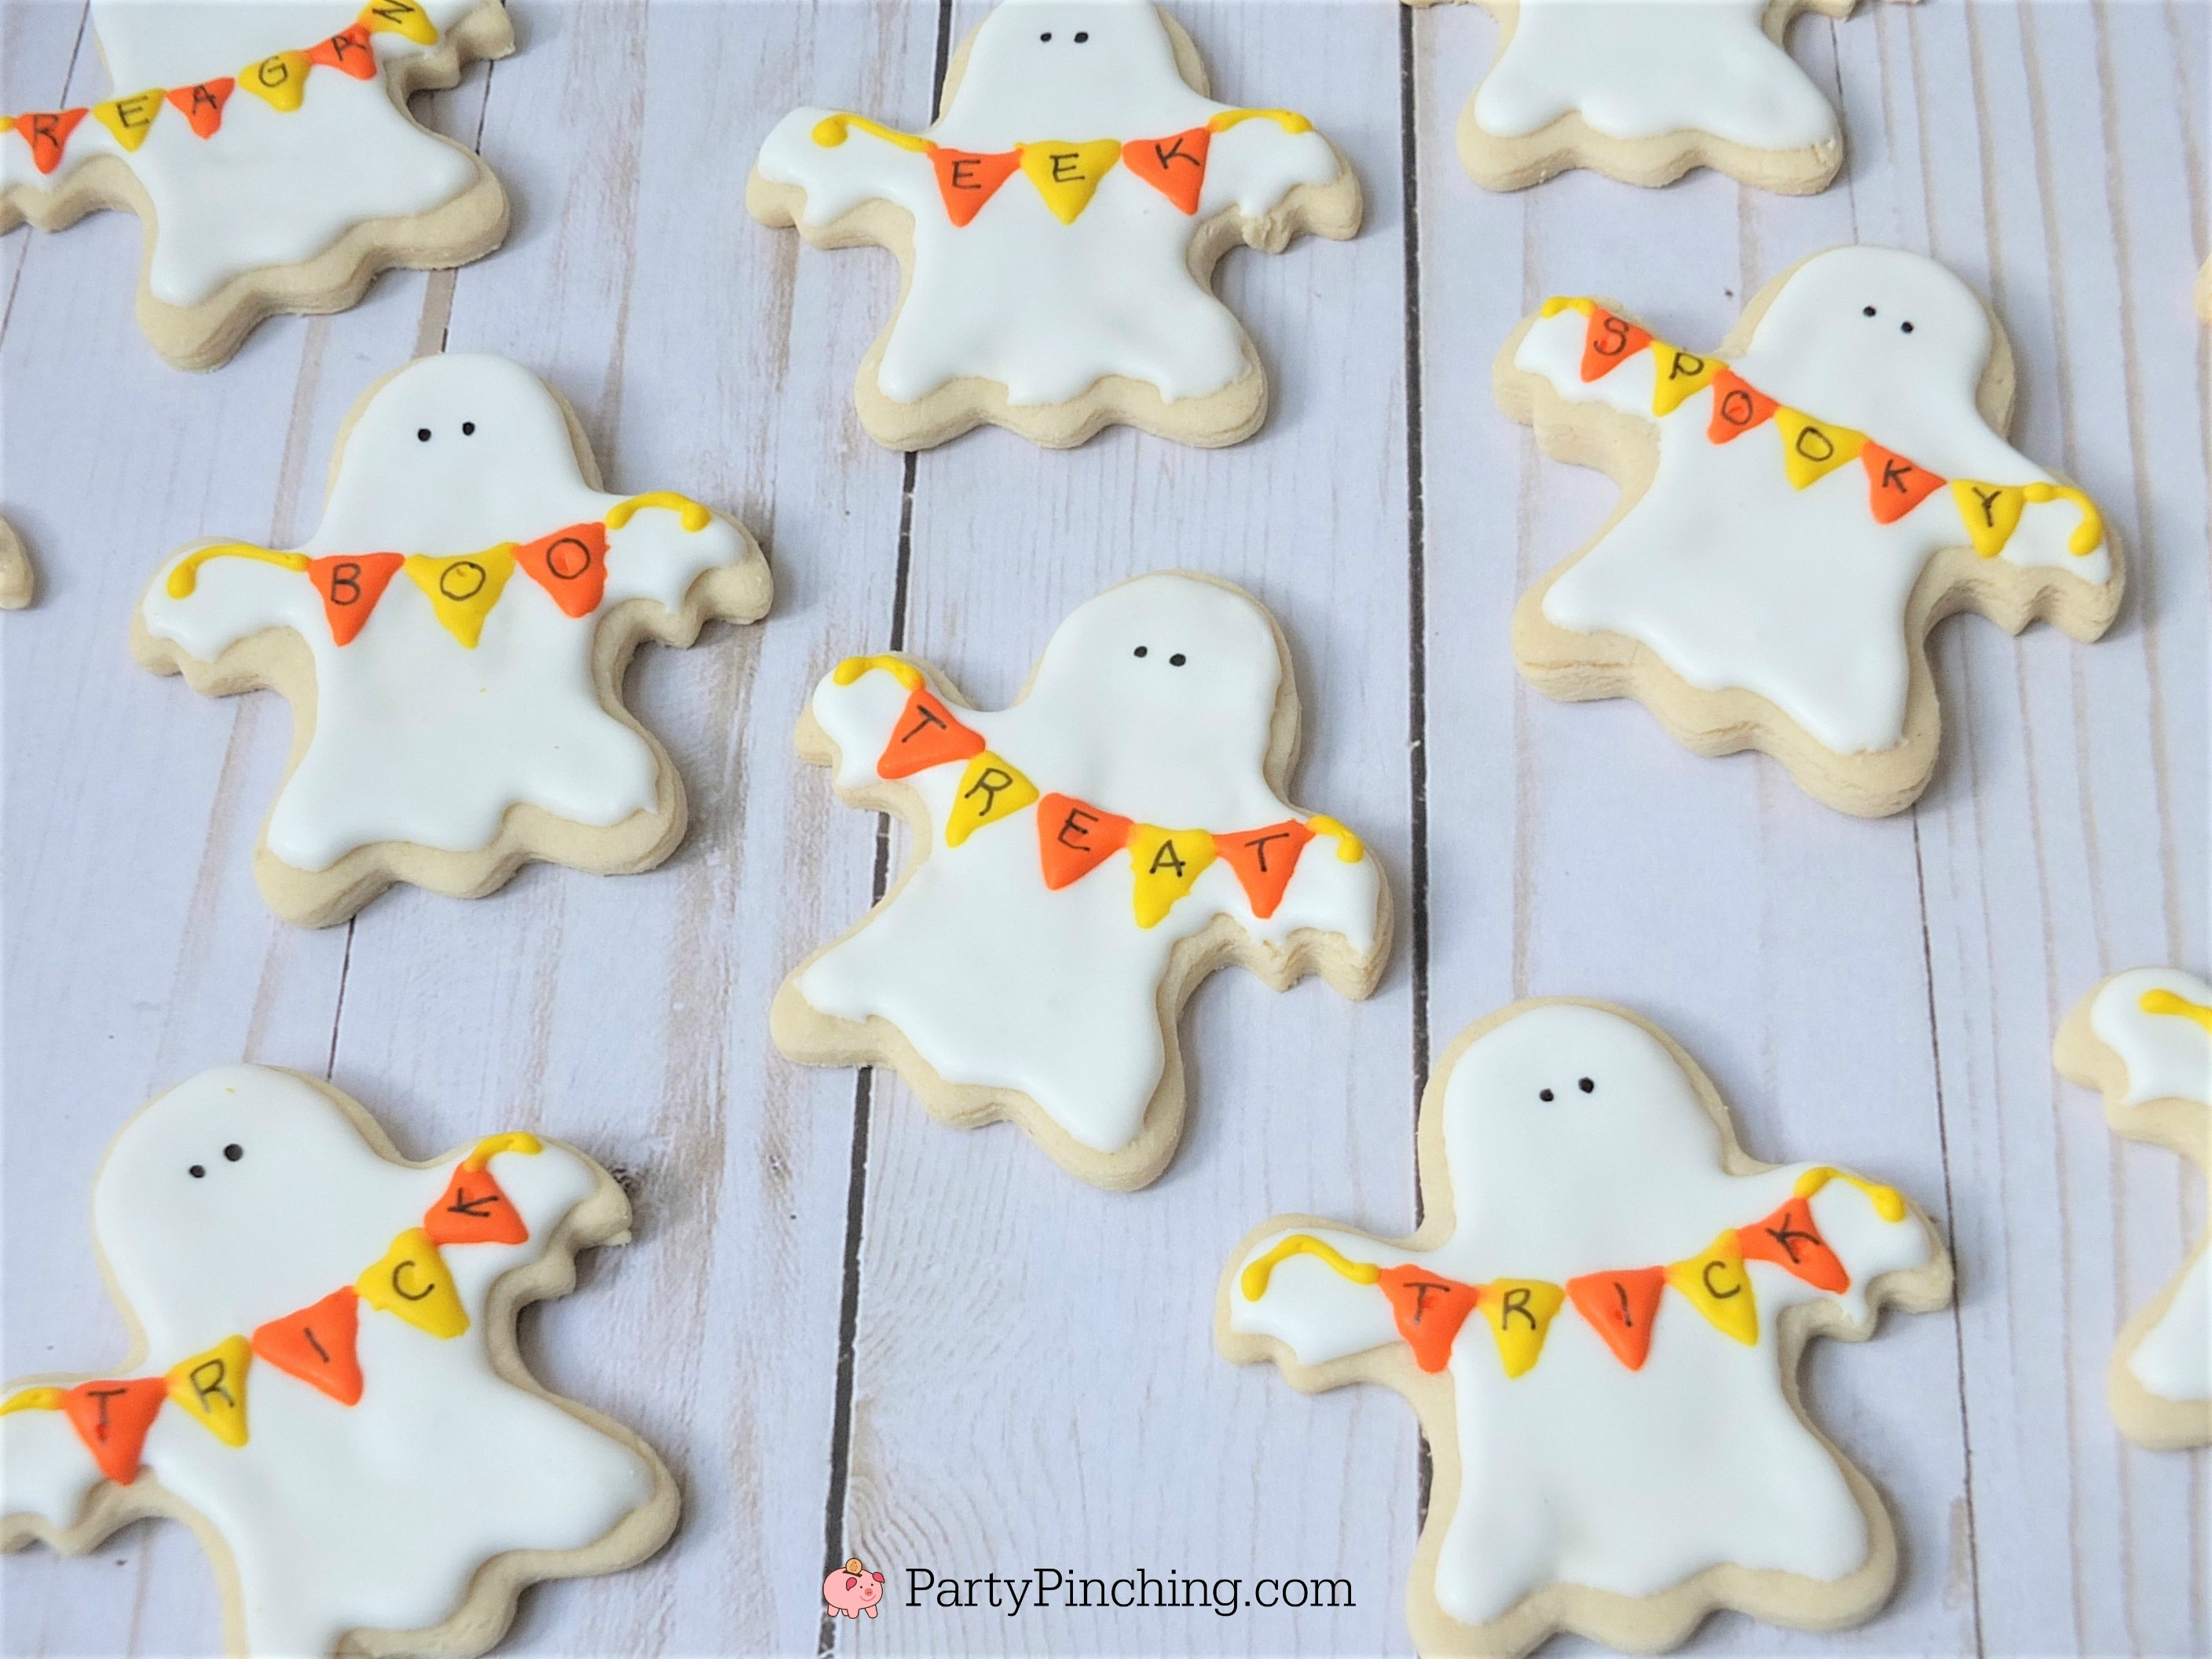 Ghost banner cookies, Halloween sugar cookies decorated royal icing, ghost banner cookies, cute Halloween cookies, black cat cookies, bat cookies, cute candy corn cookies, cute pumpkin jack o lantern cookies